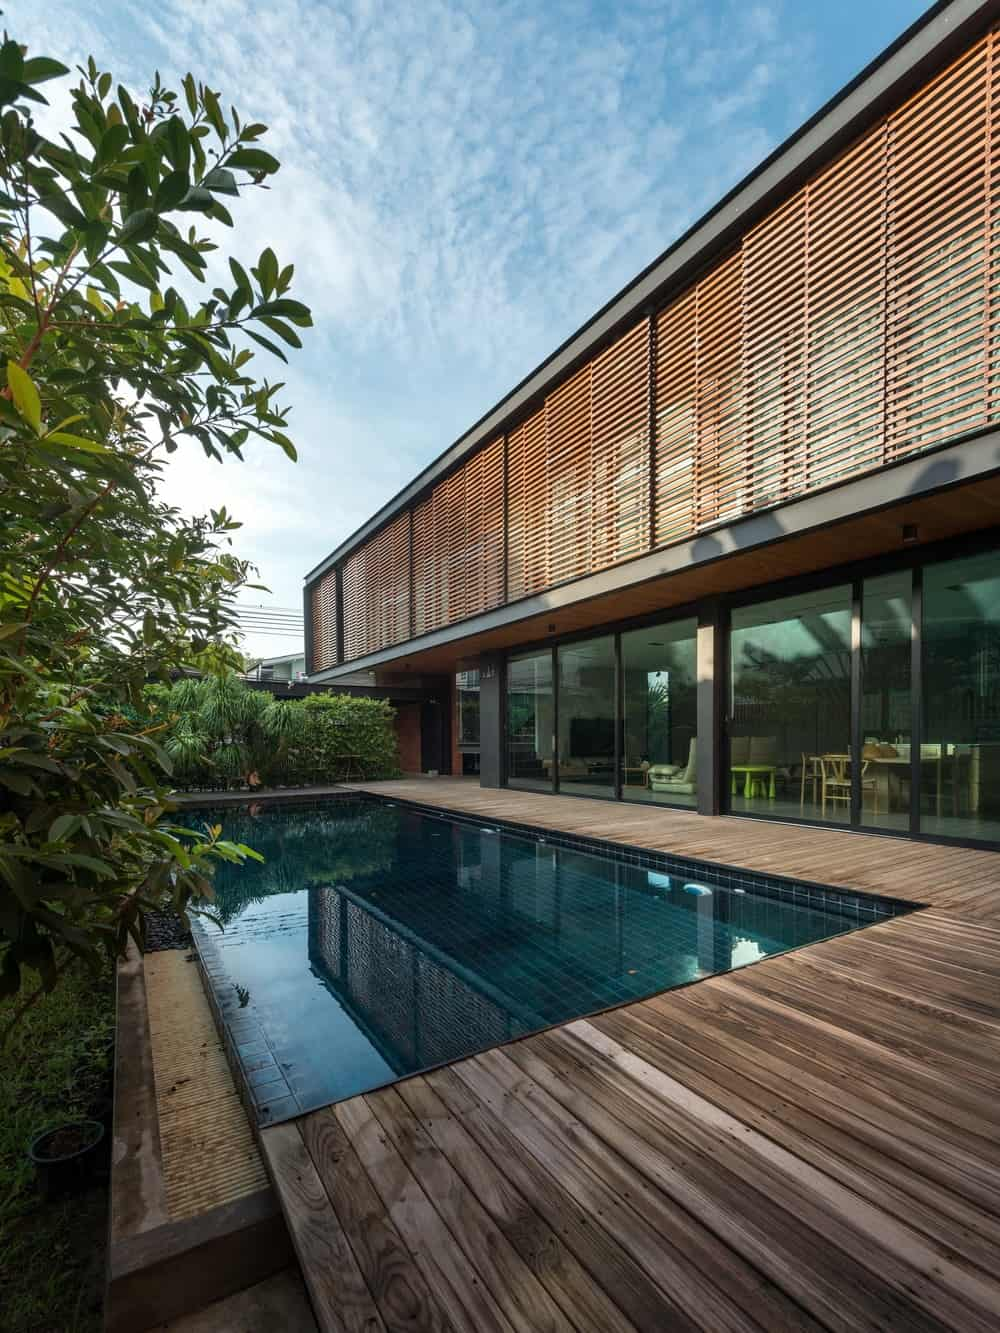 The wooden slats of the second floor panels match the walkway flooring on the sides of the infinity pool.